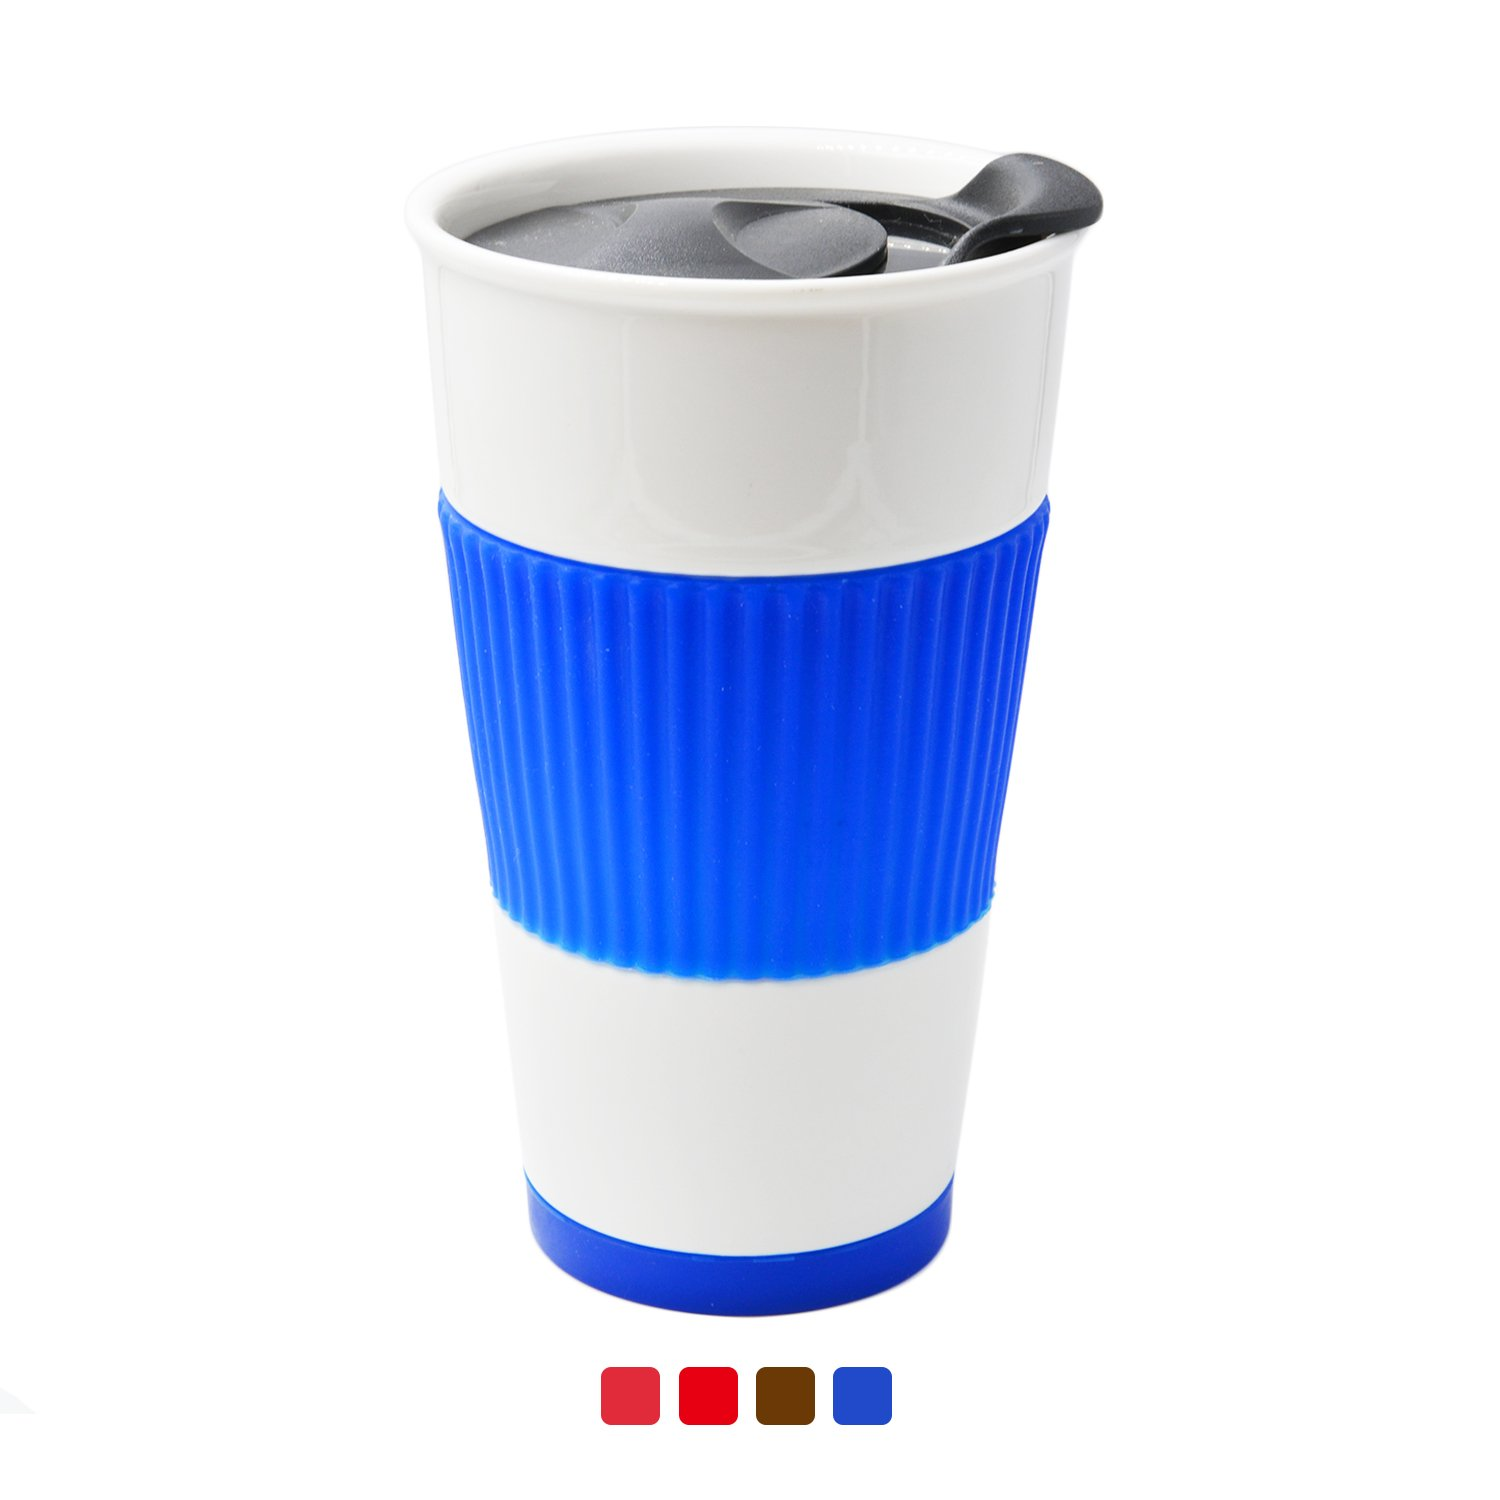 UDMG Ceramic Double Wall Insulated Travel Coffee Cup with Slider Lid, Silicone Sleeve & Built-In Coaster, 10 fl.oz (Blue)